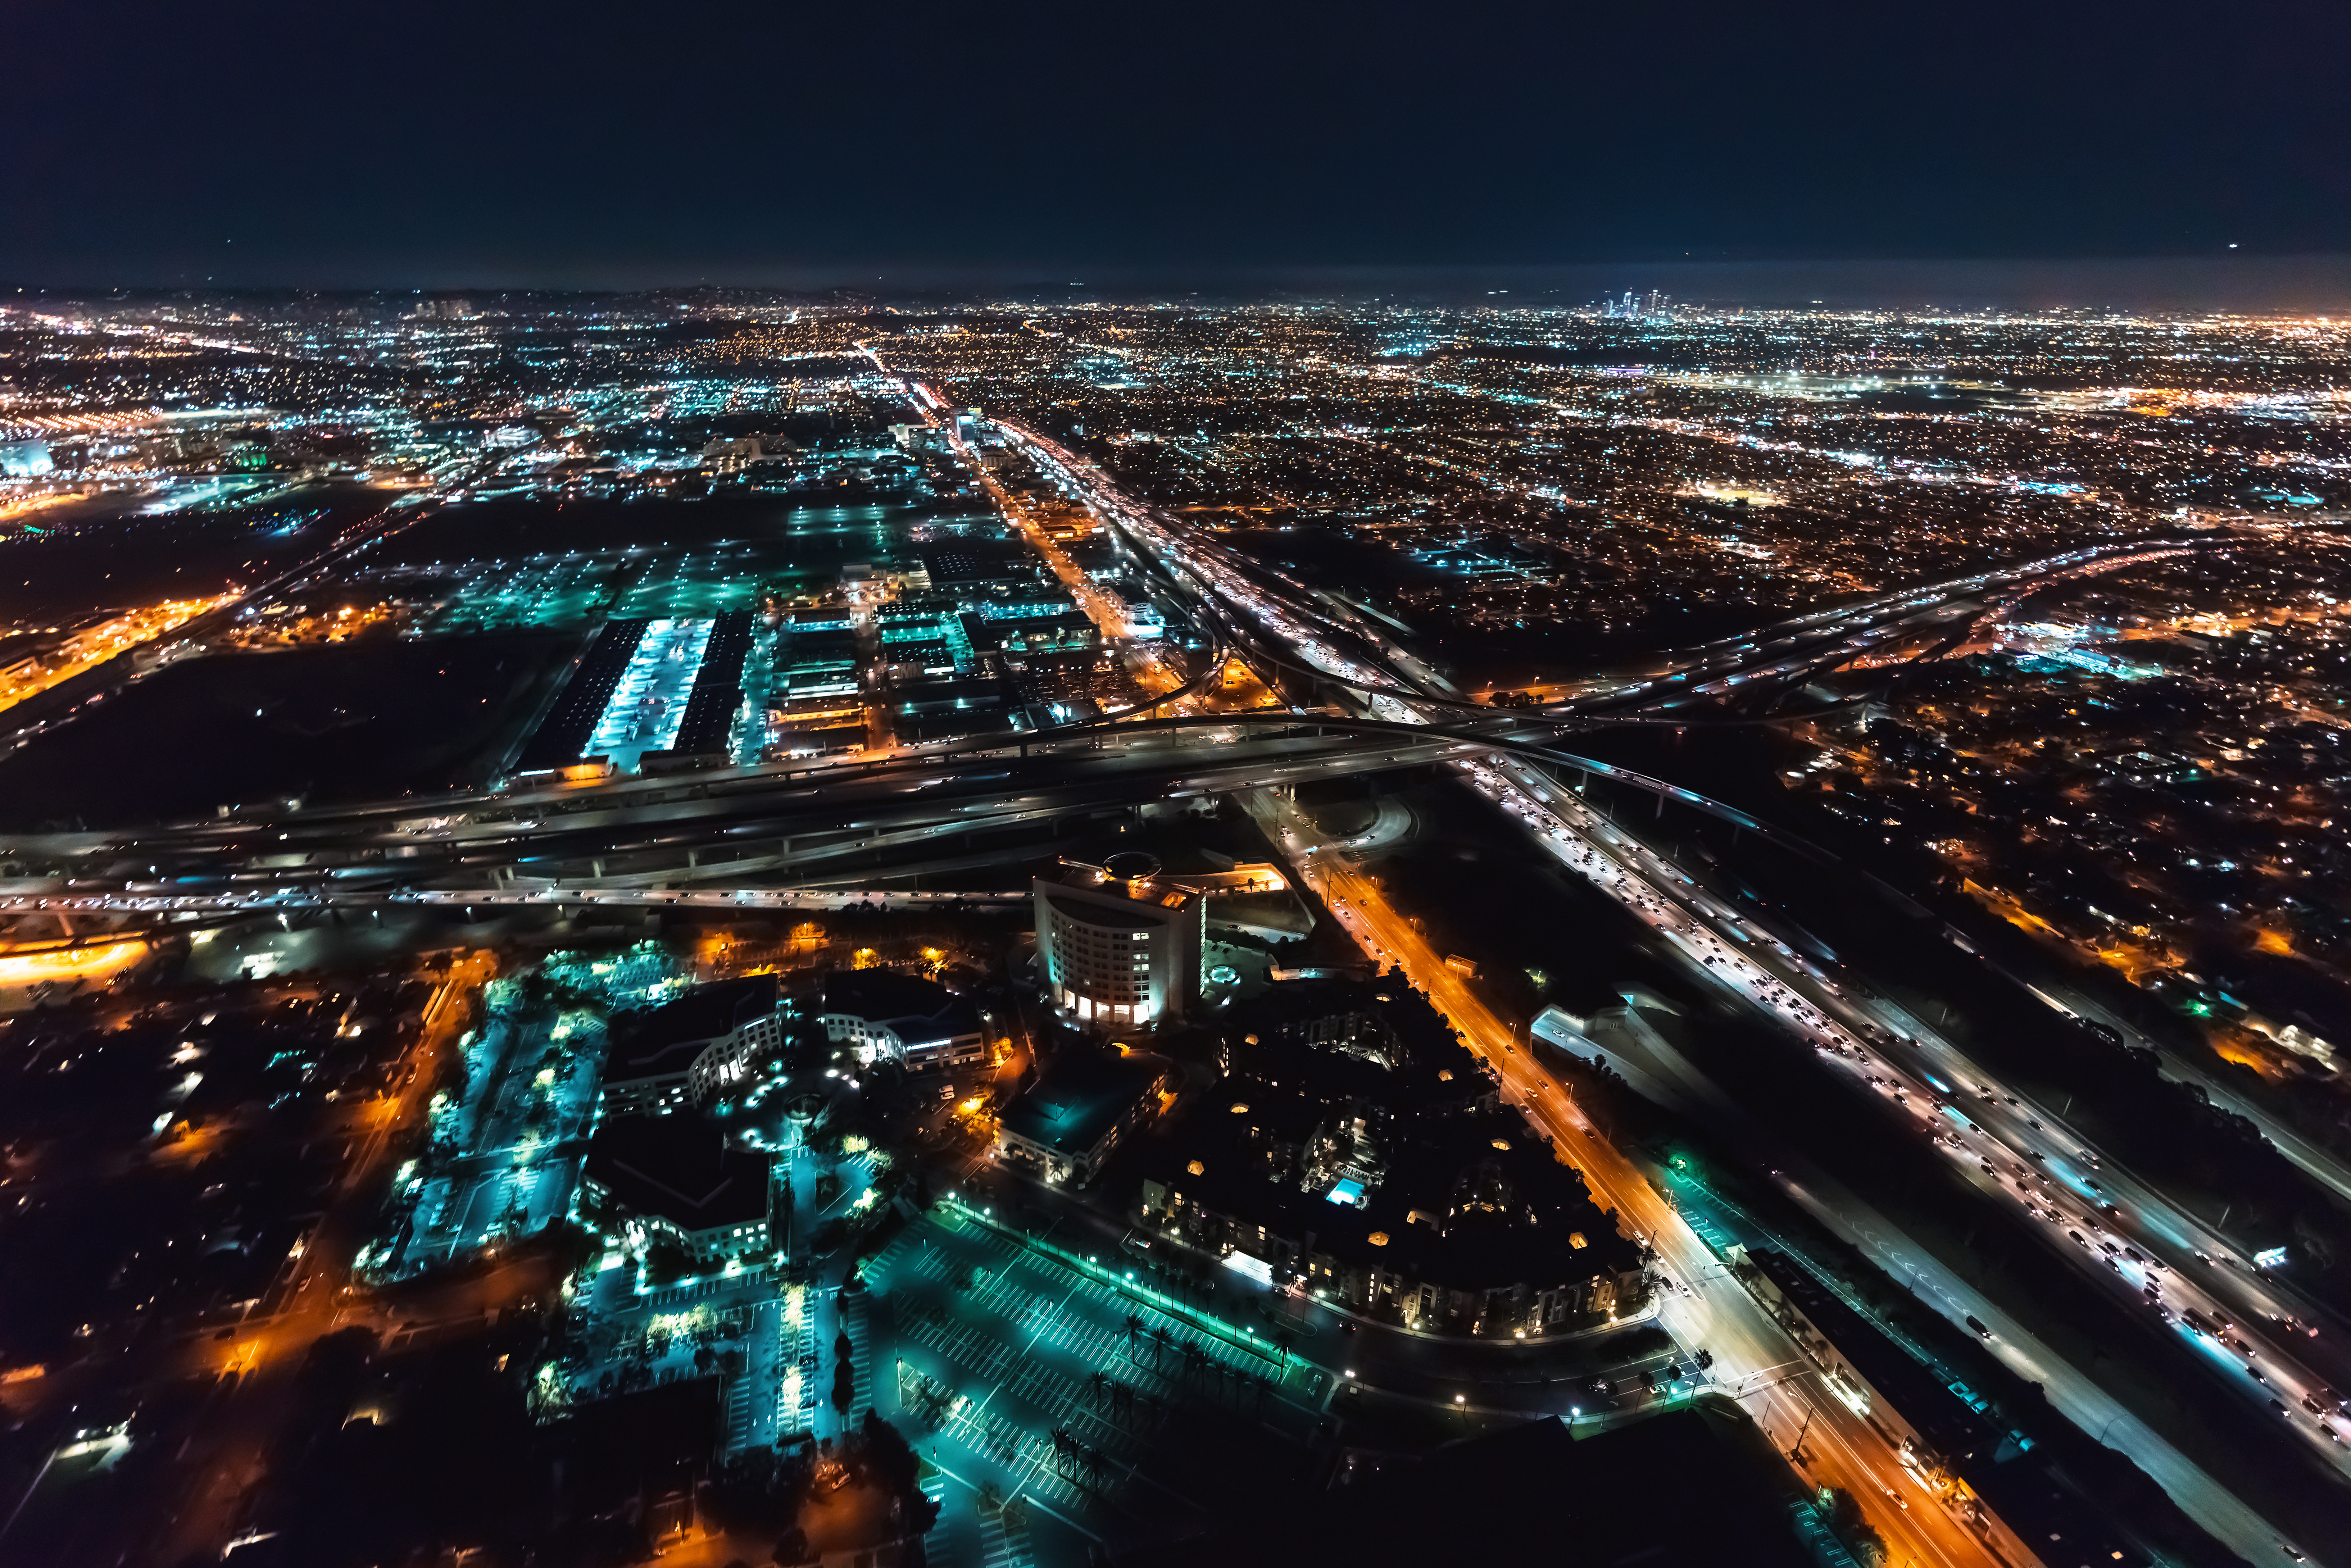 Aerial view of Los Angeles, California, near LAX at night.